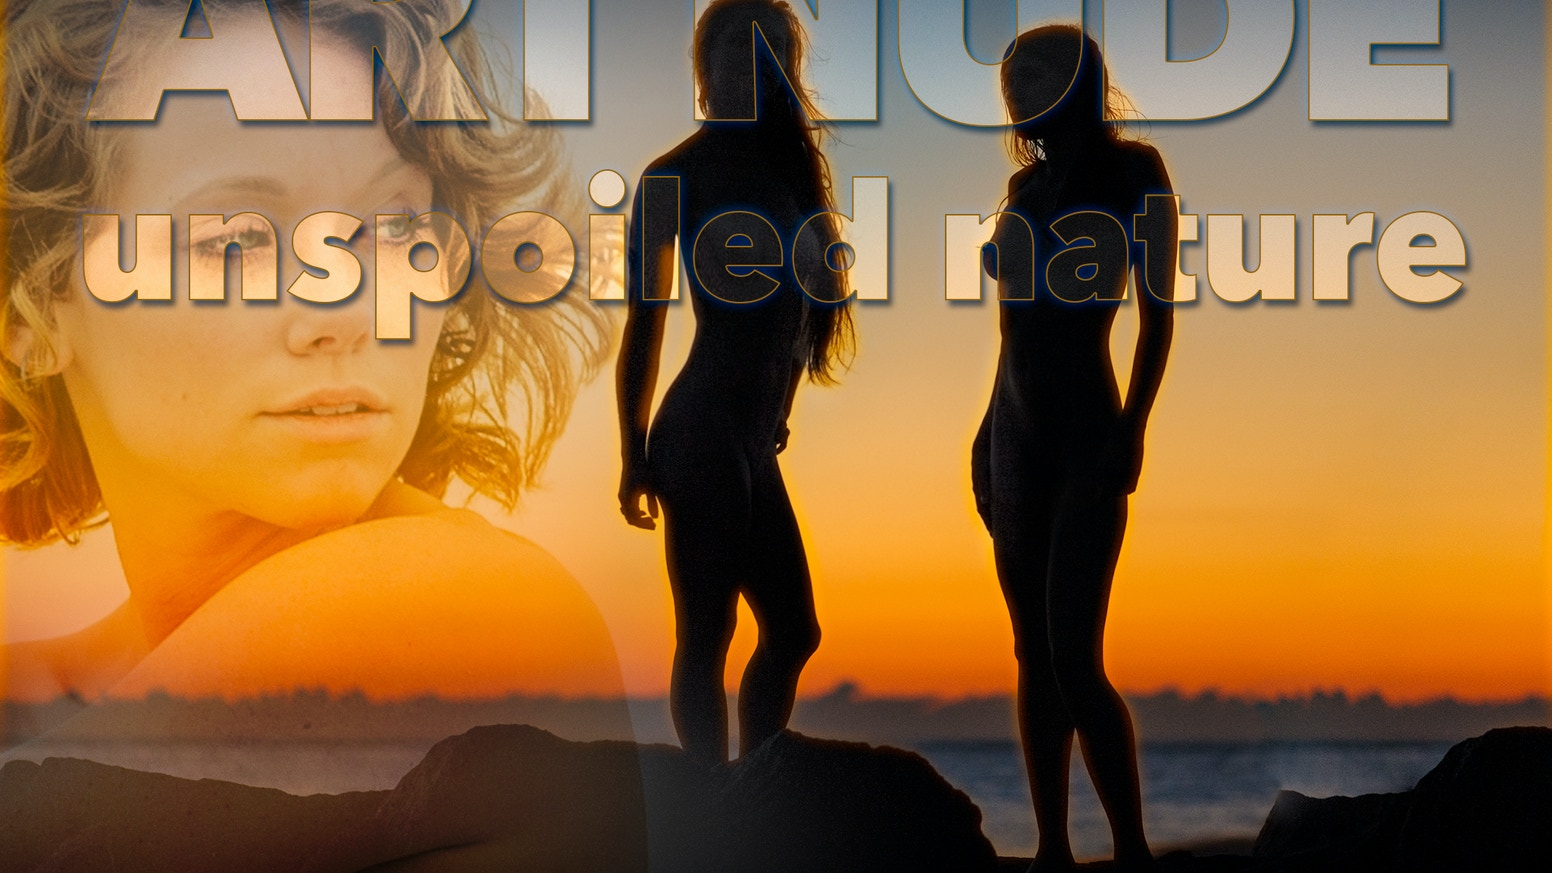 Art Nudes in Pristine Island Landscape: 100+ image autographed photobook, HD documentary, limited edition prints, album, card sets